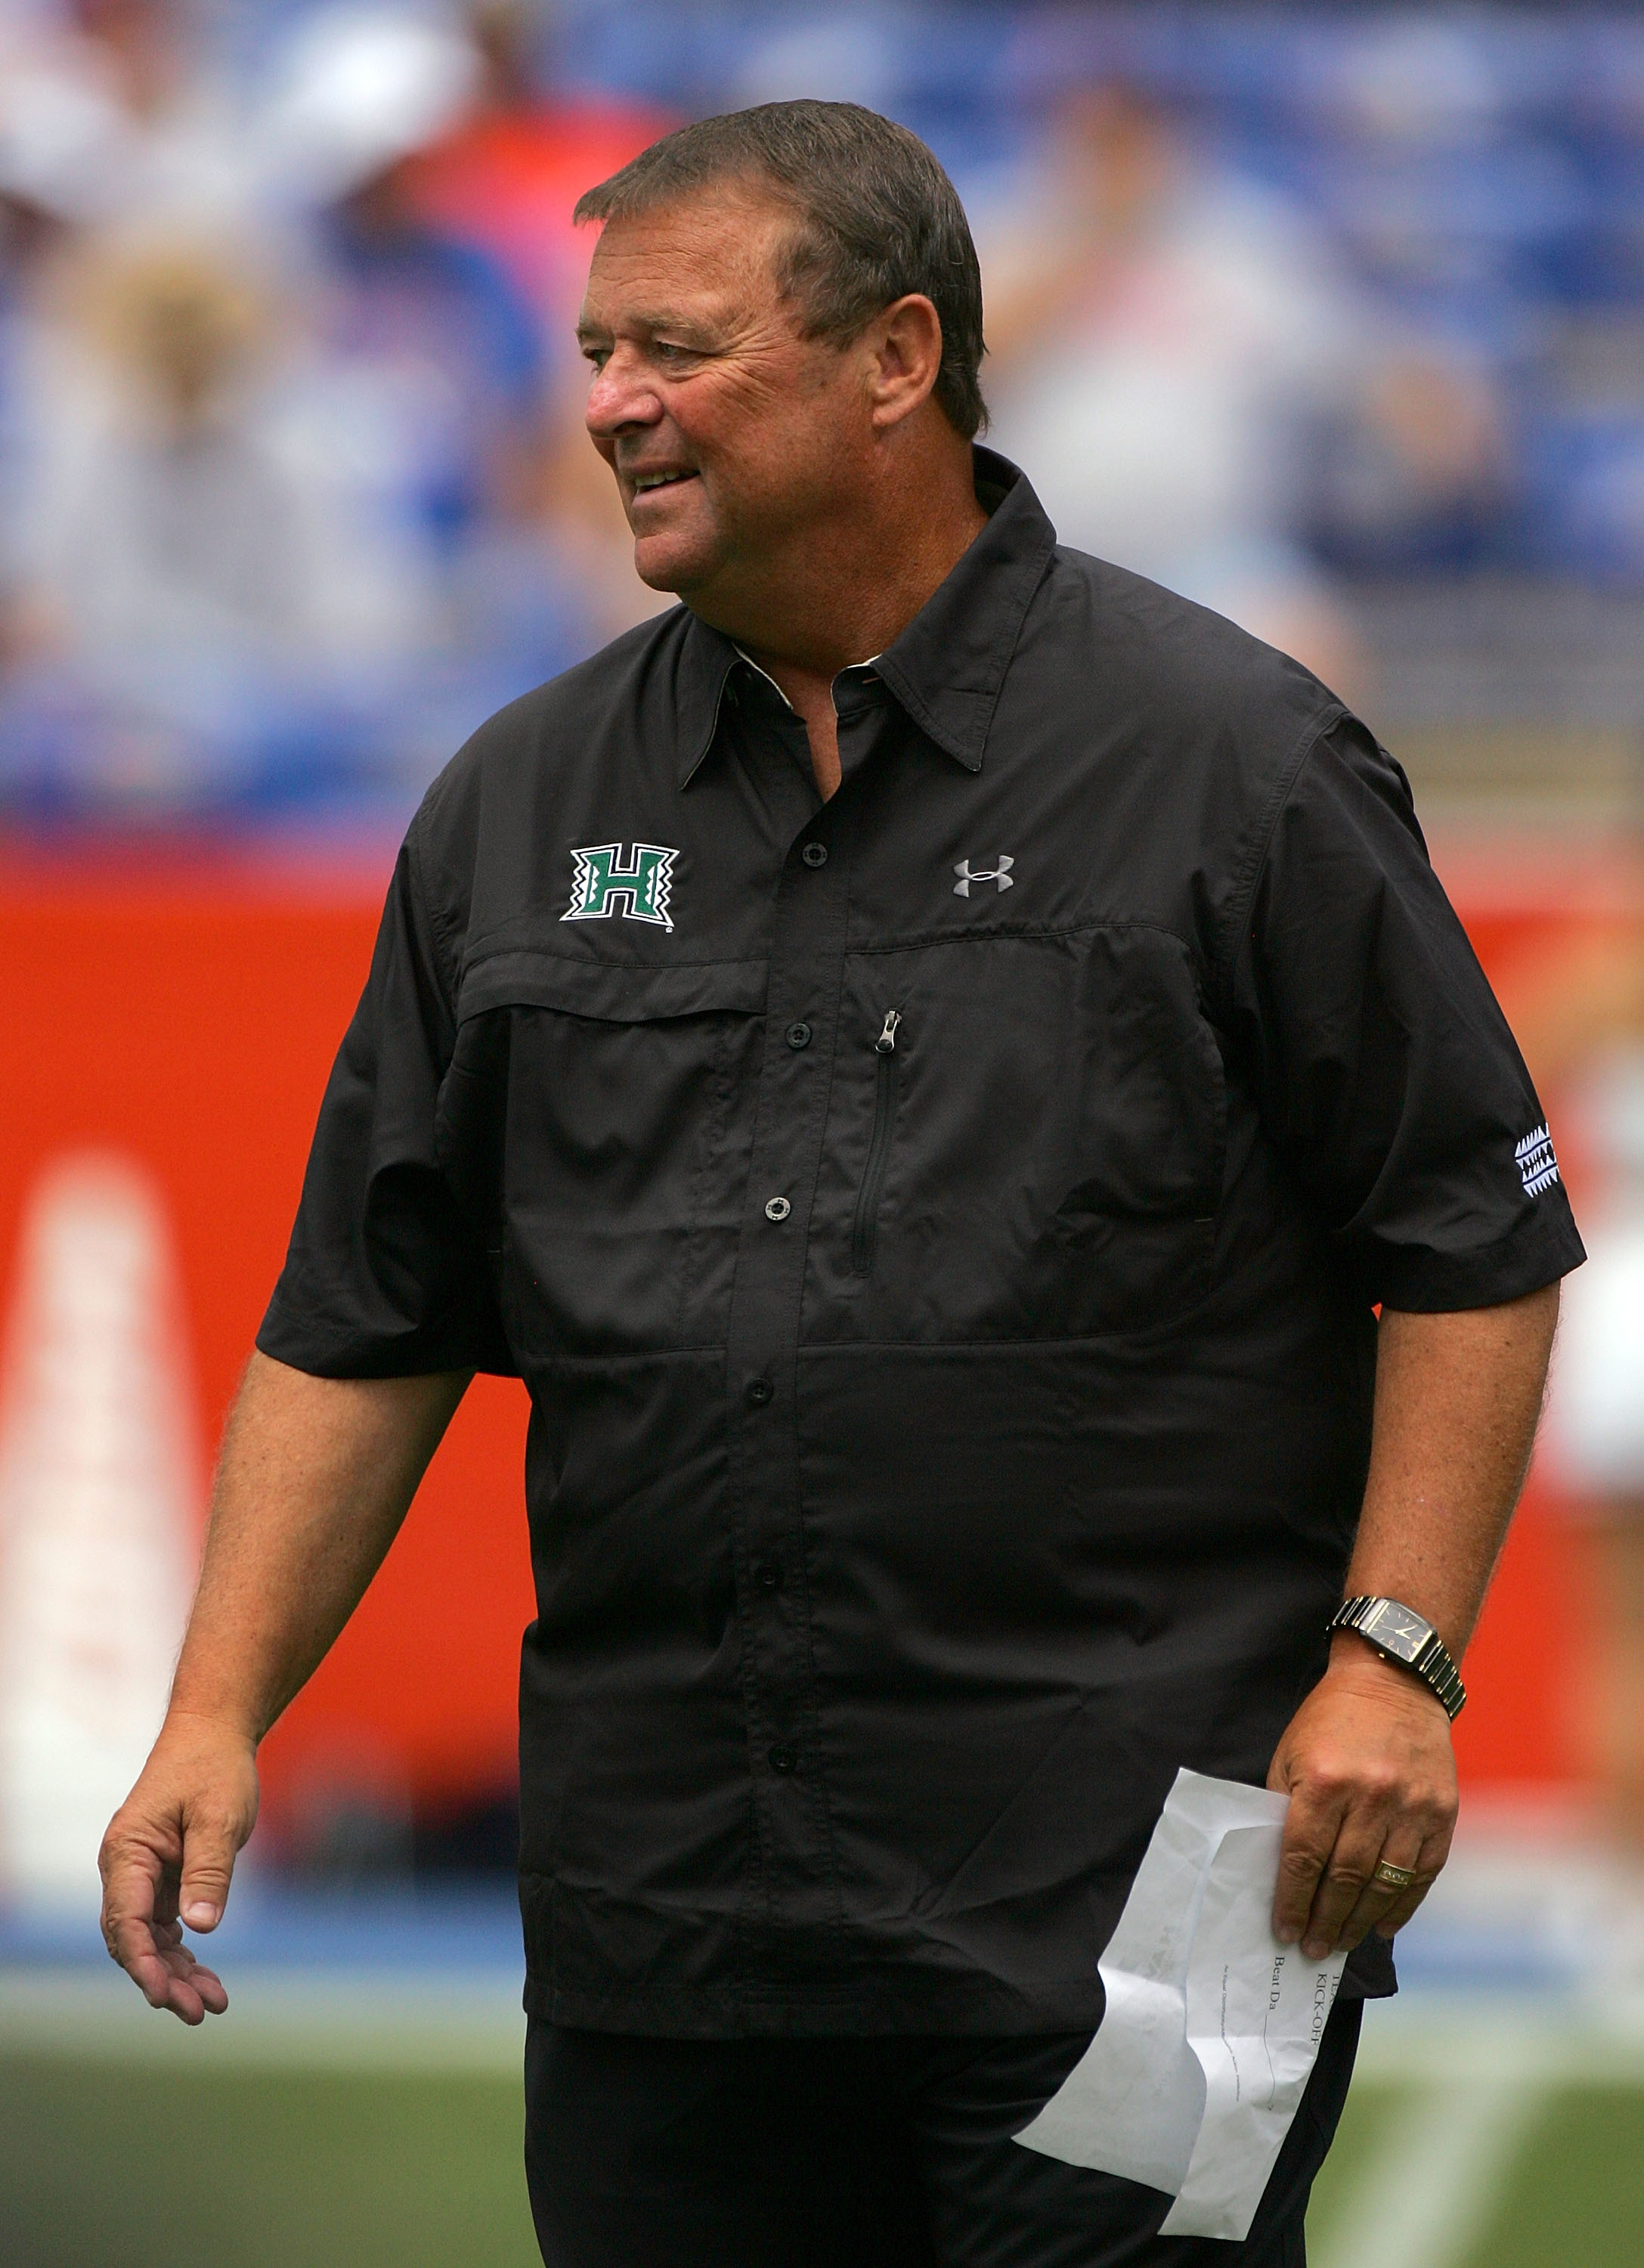 GAINESVILLE, FL - AUGUST 30:  Head coach Greg McMackin of the Hawaii Warriors sends in signals during the game against the Florida Gators at Ben Hill Griffin Stadium on August 30, 2008 in Gainesville, Florida.  (Photo by Sam Greenwood/Getty Images)